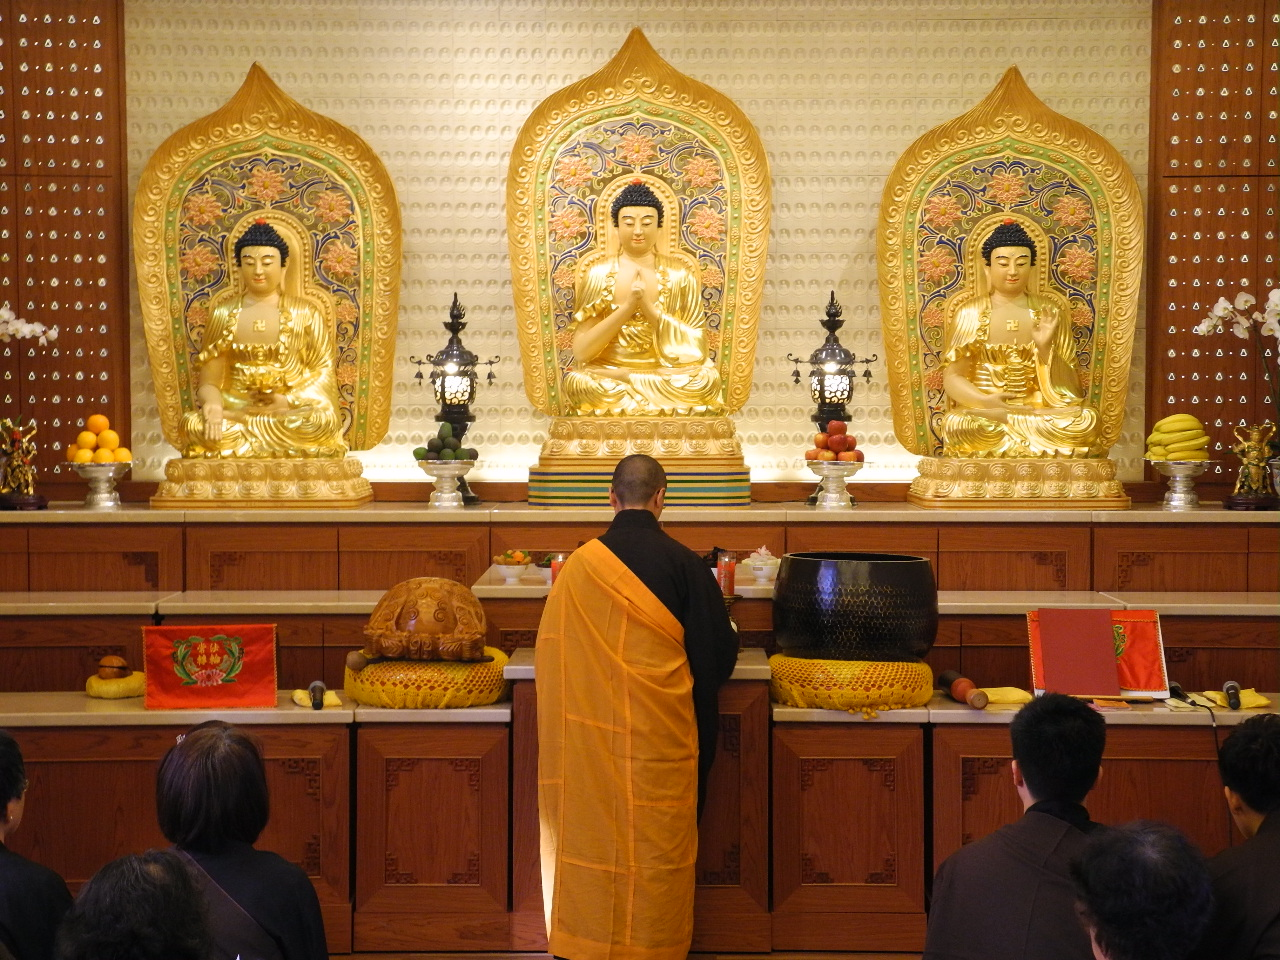 Woman in saffron robe stands before three Buddhas